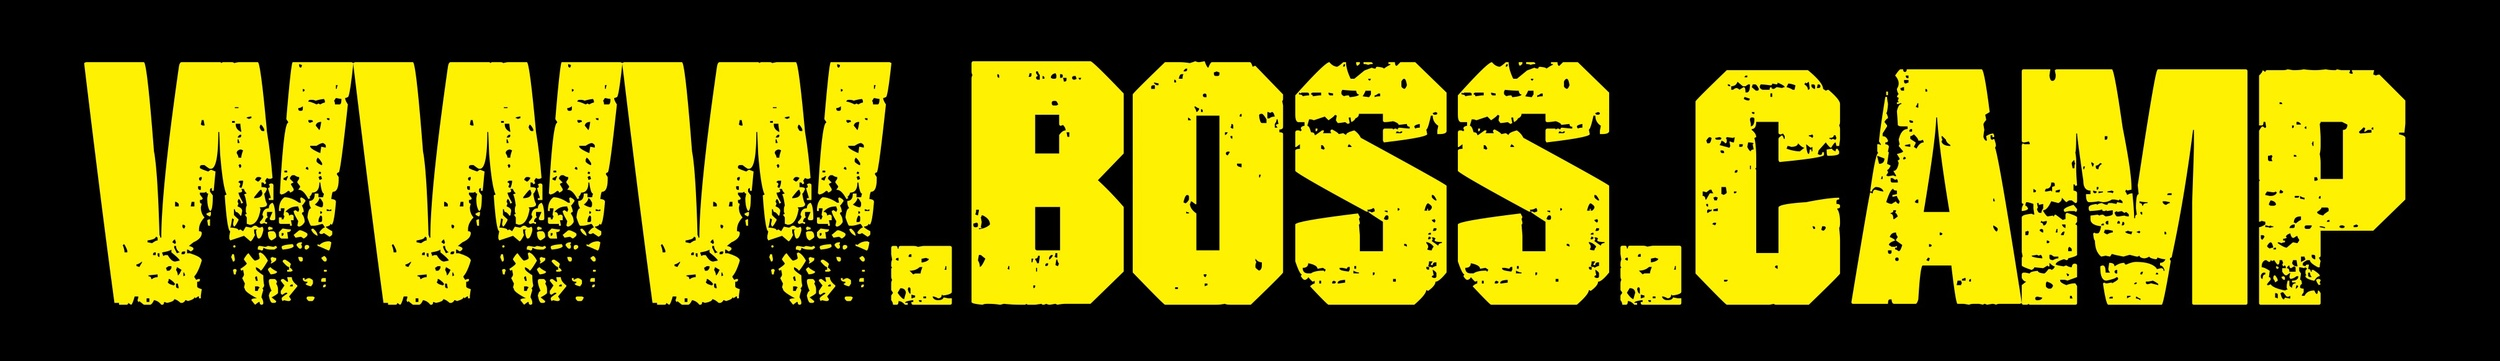 Discover proven techniques for employee selection, motivation and retention in just an hour a week at www.boss.camp Jpeg